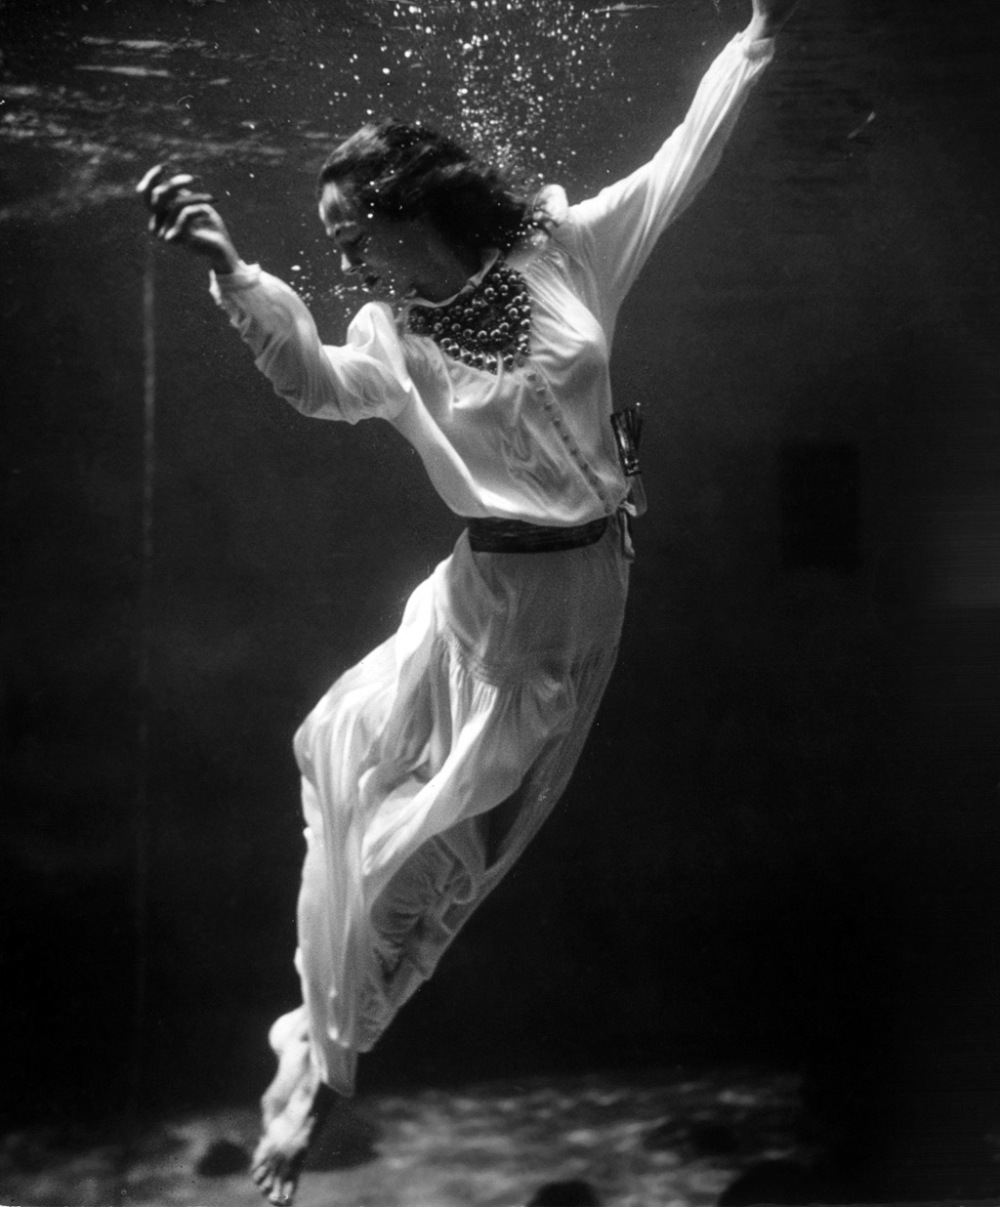 Toni Frissell, Mermaid, 1939